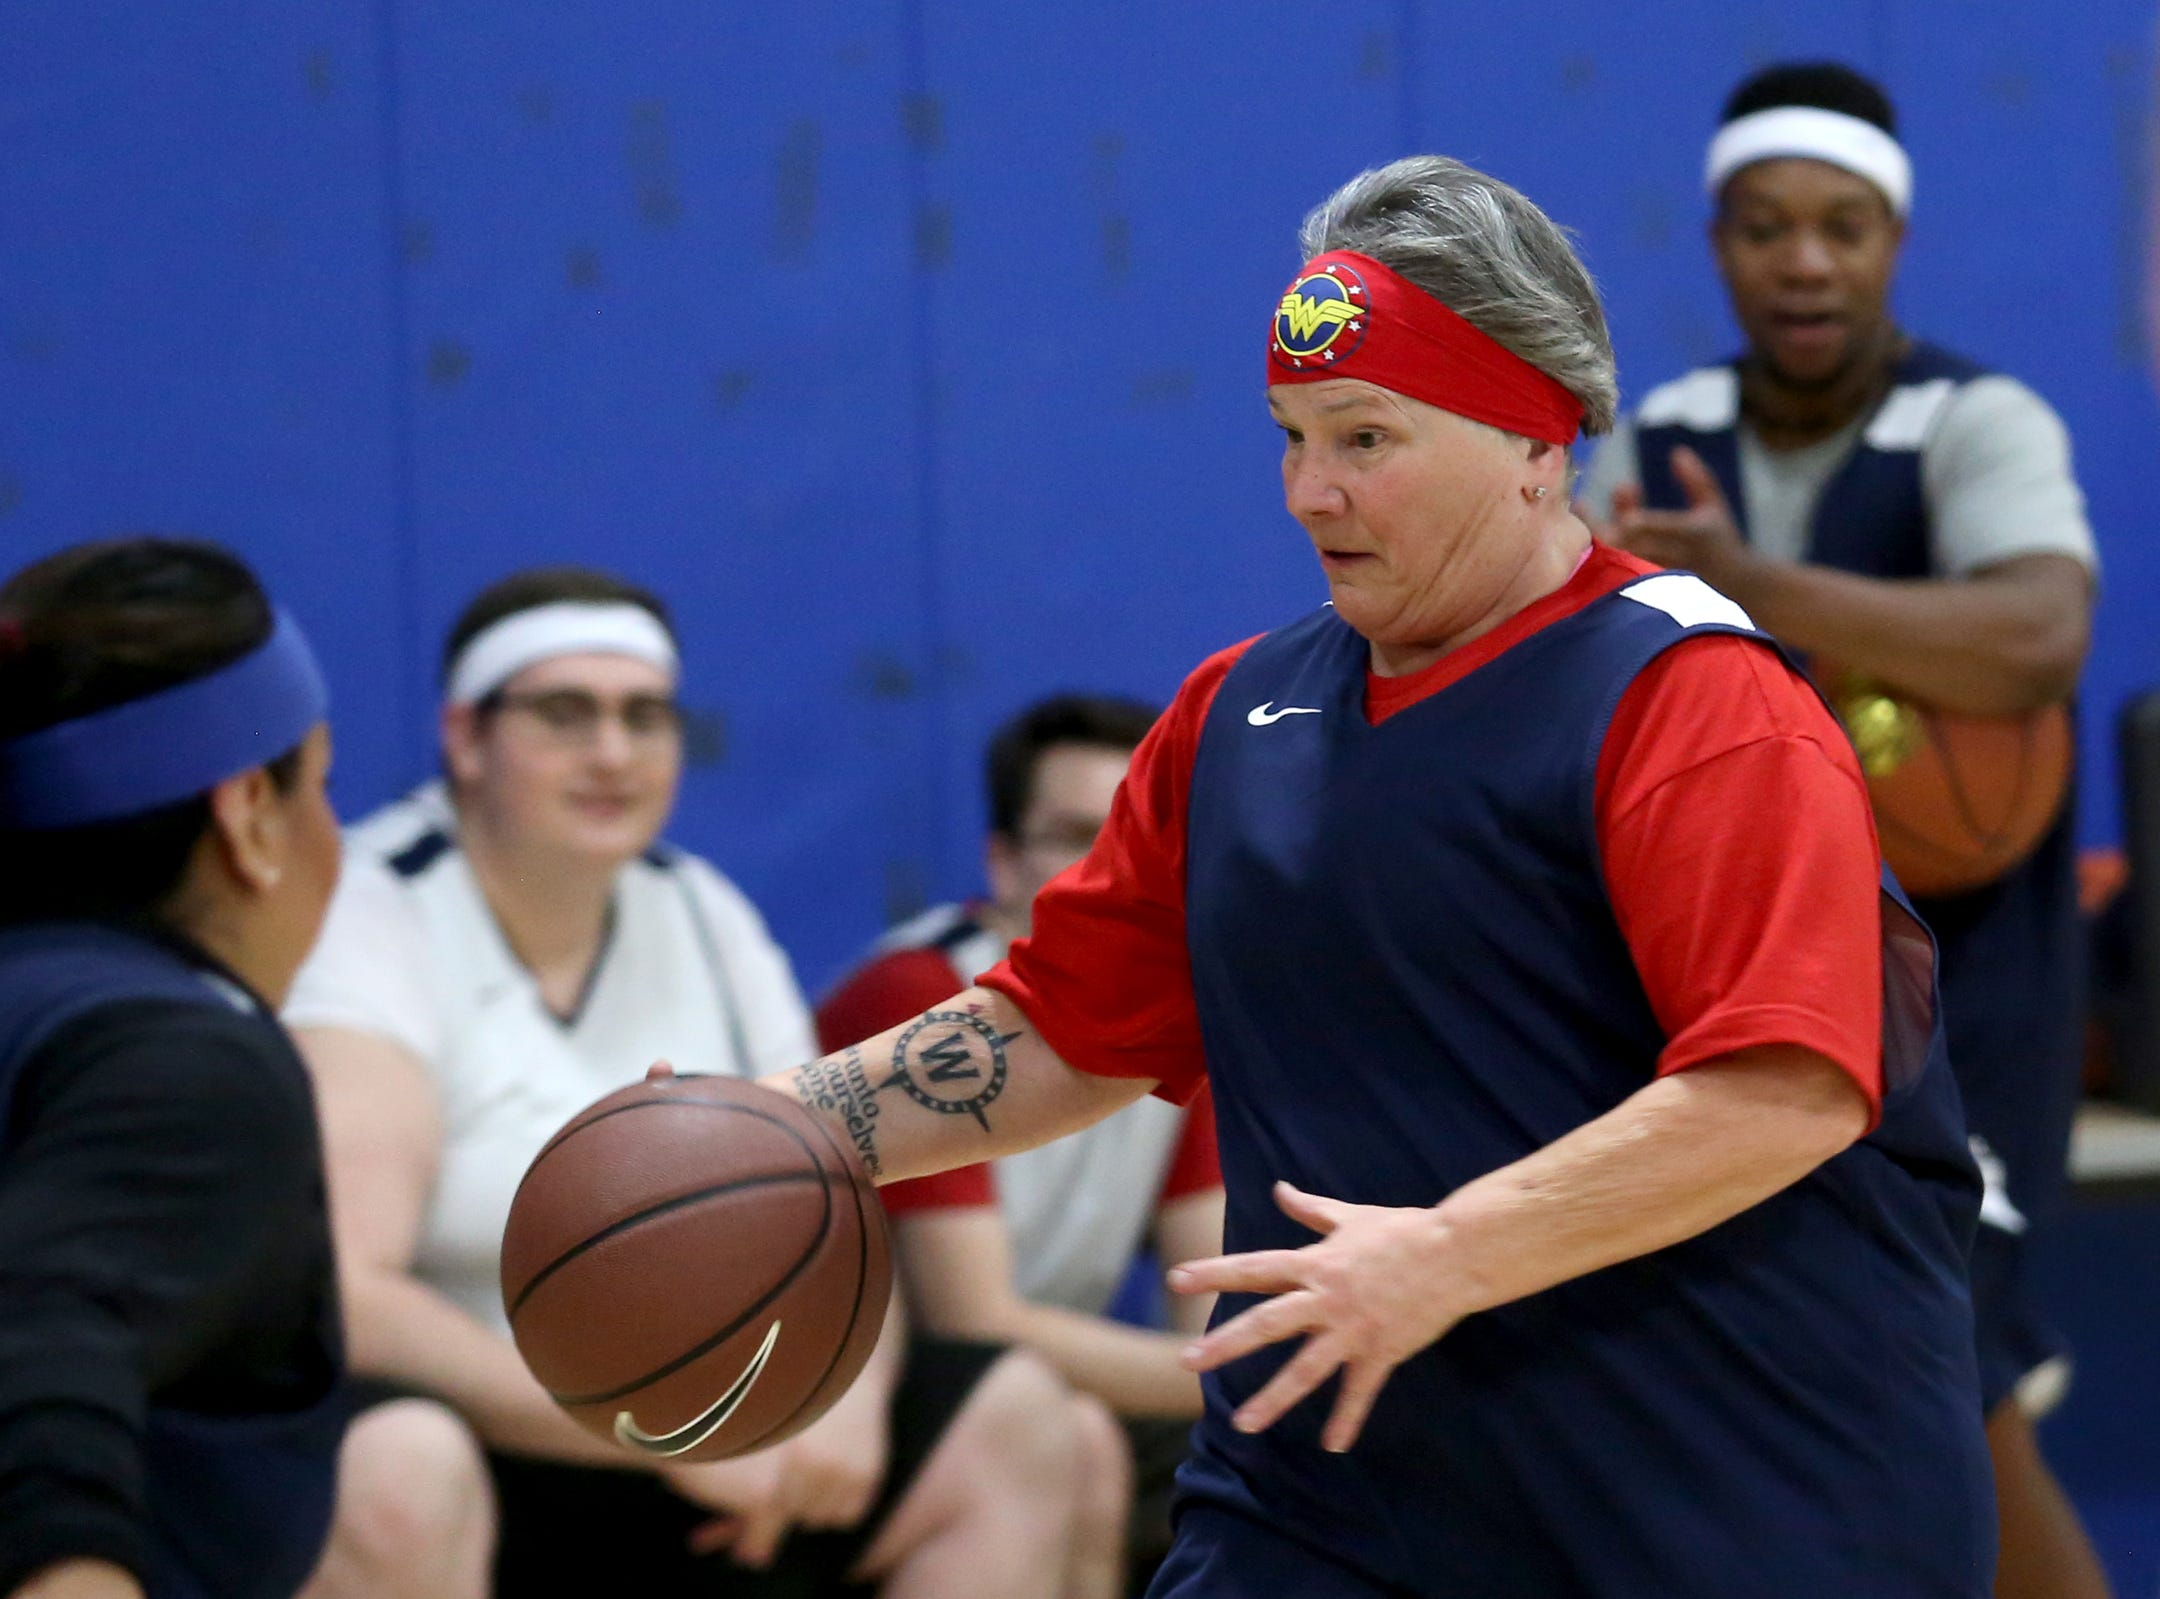 Rep. Carla Piluso plays in the second annual House vs. Senate charity basketball tournament at the Boys & Girls Club in Salem on March 13, 2019. The tournament raised more than $10,000 for the Oregon Alliance of Boys & Girls Clubs.